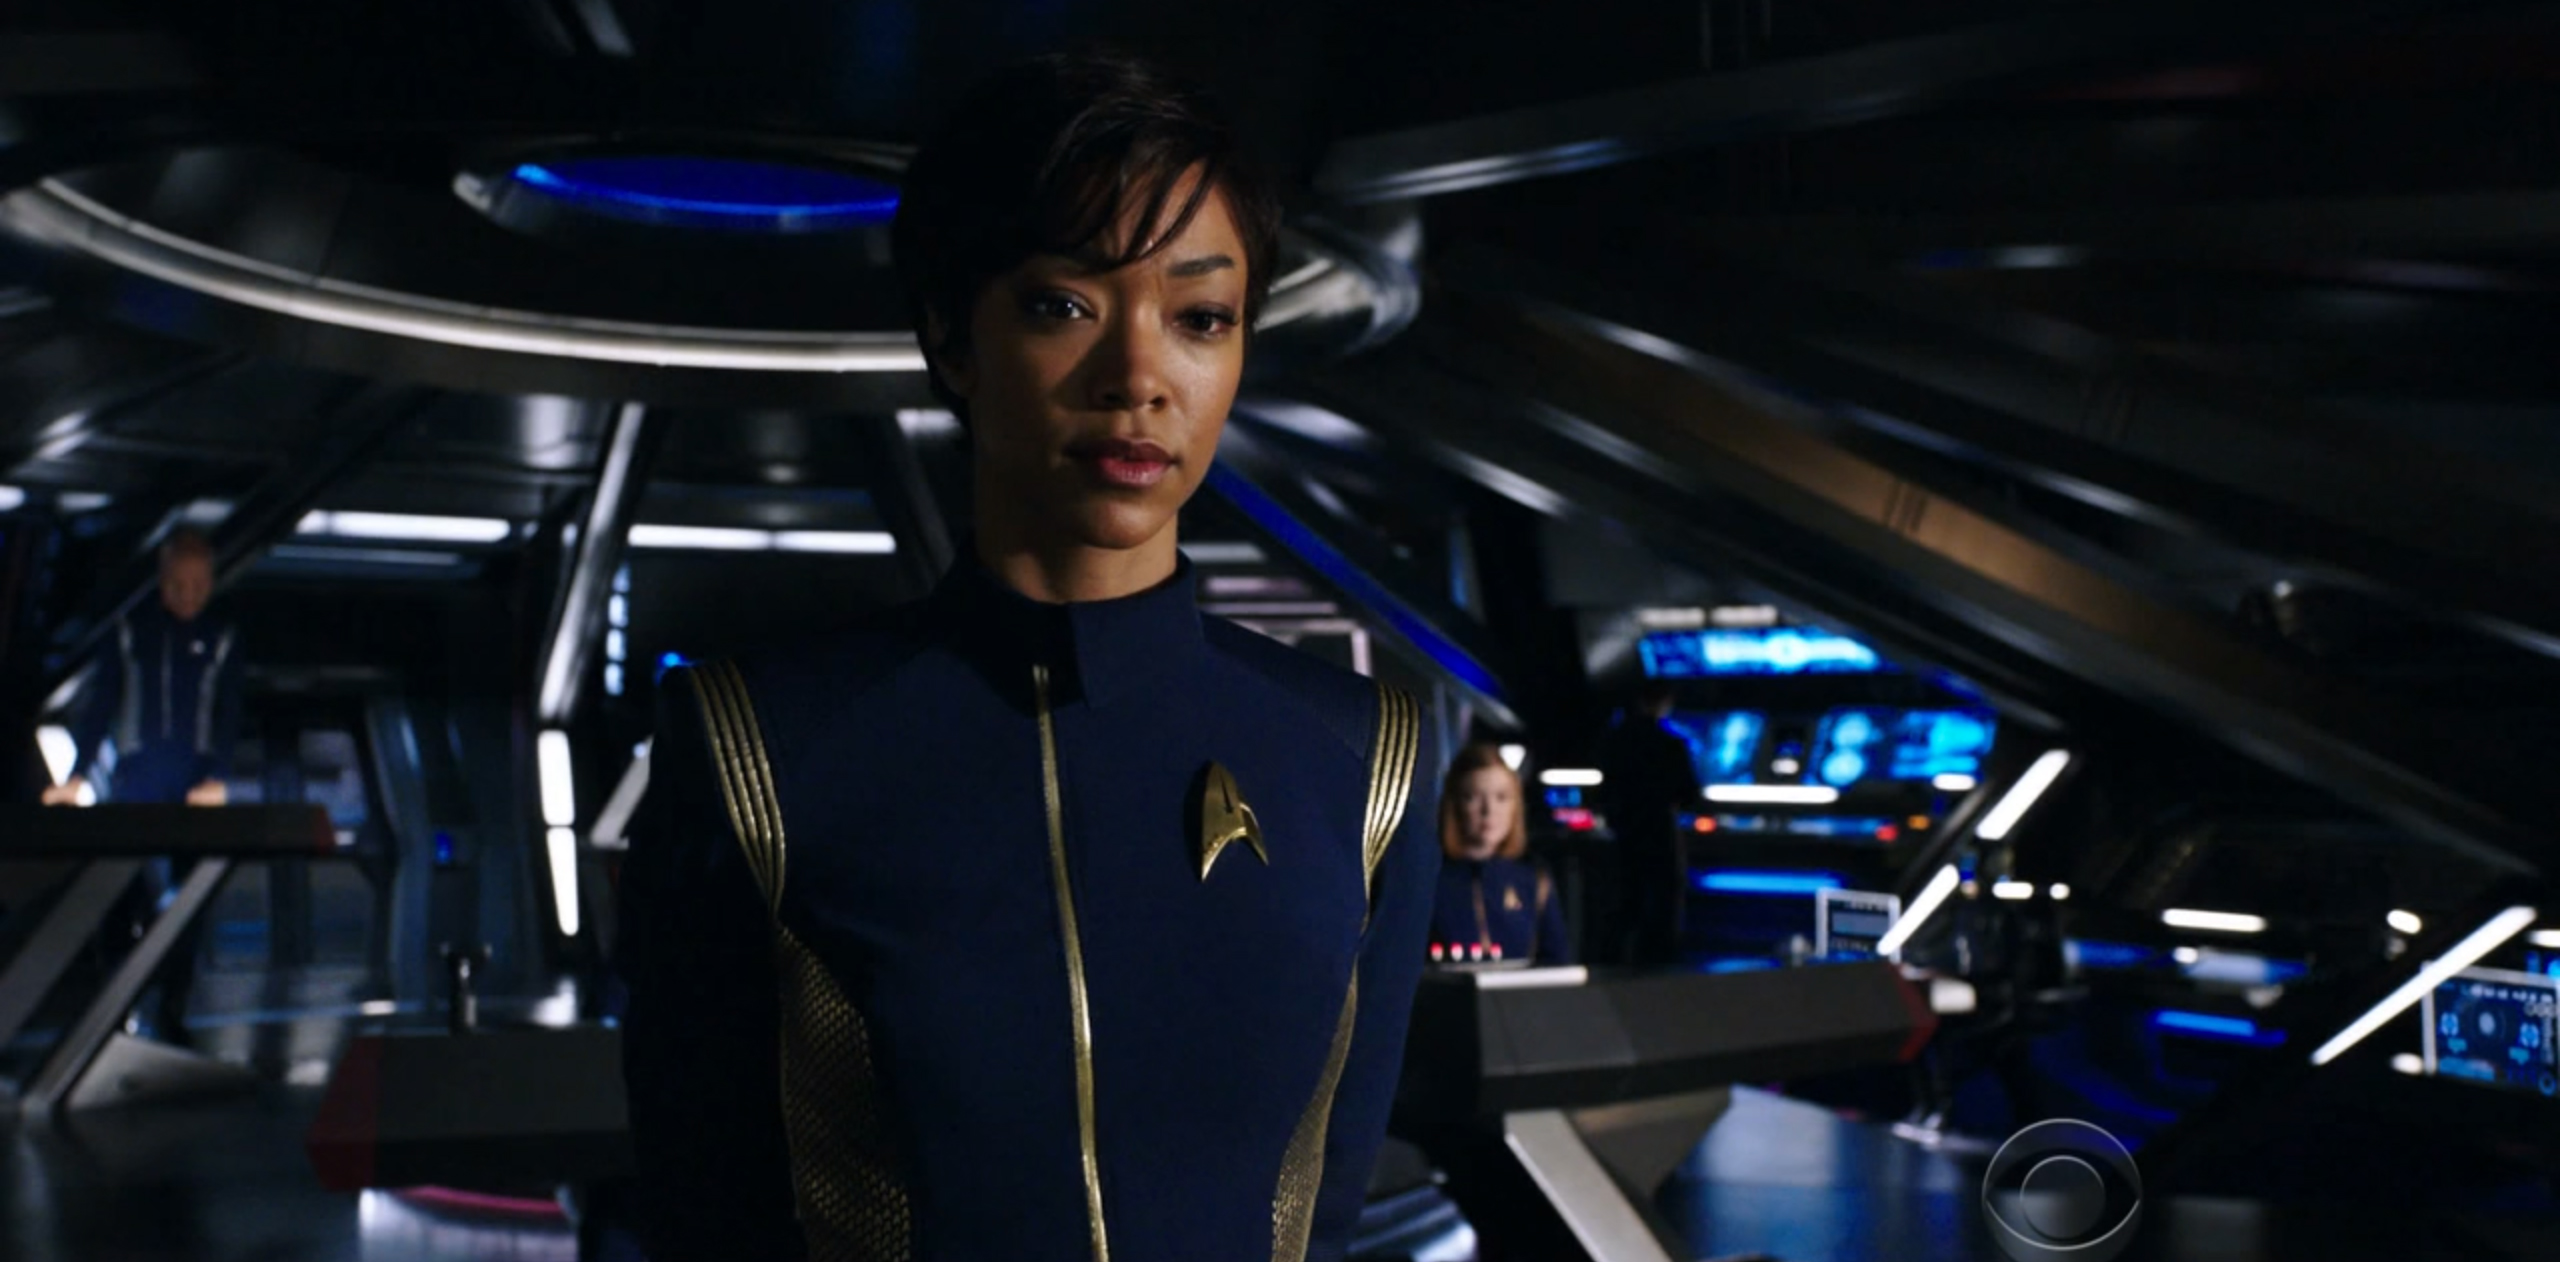 The New CBS Star Trek Series Is Called Star Trek Discovery